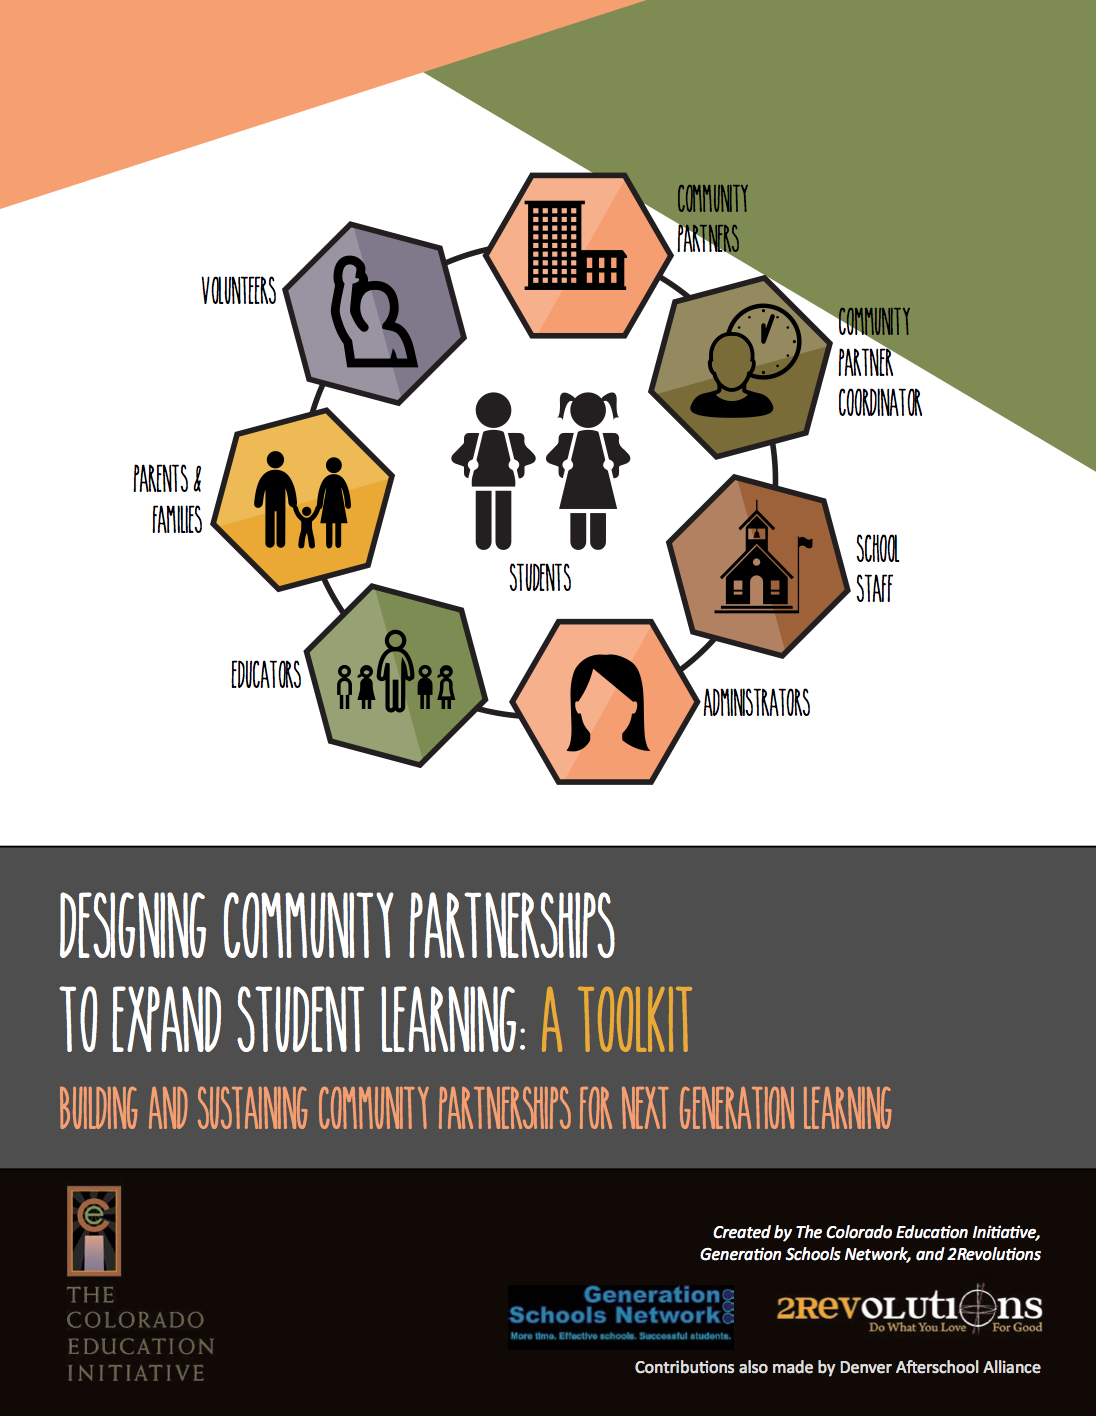 designing community partnerships to expand student learning: a toolkit, august 2015